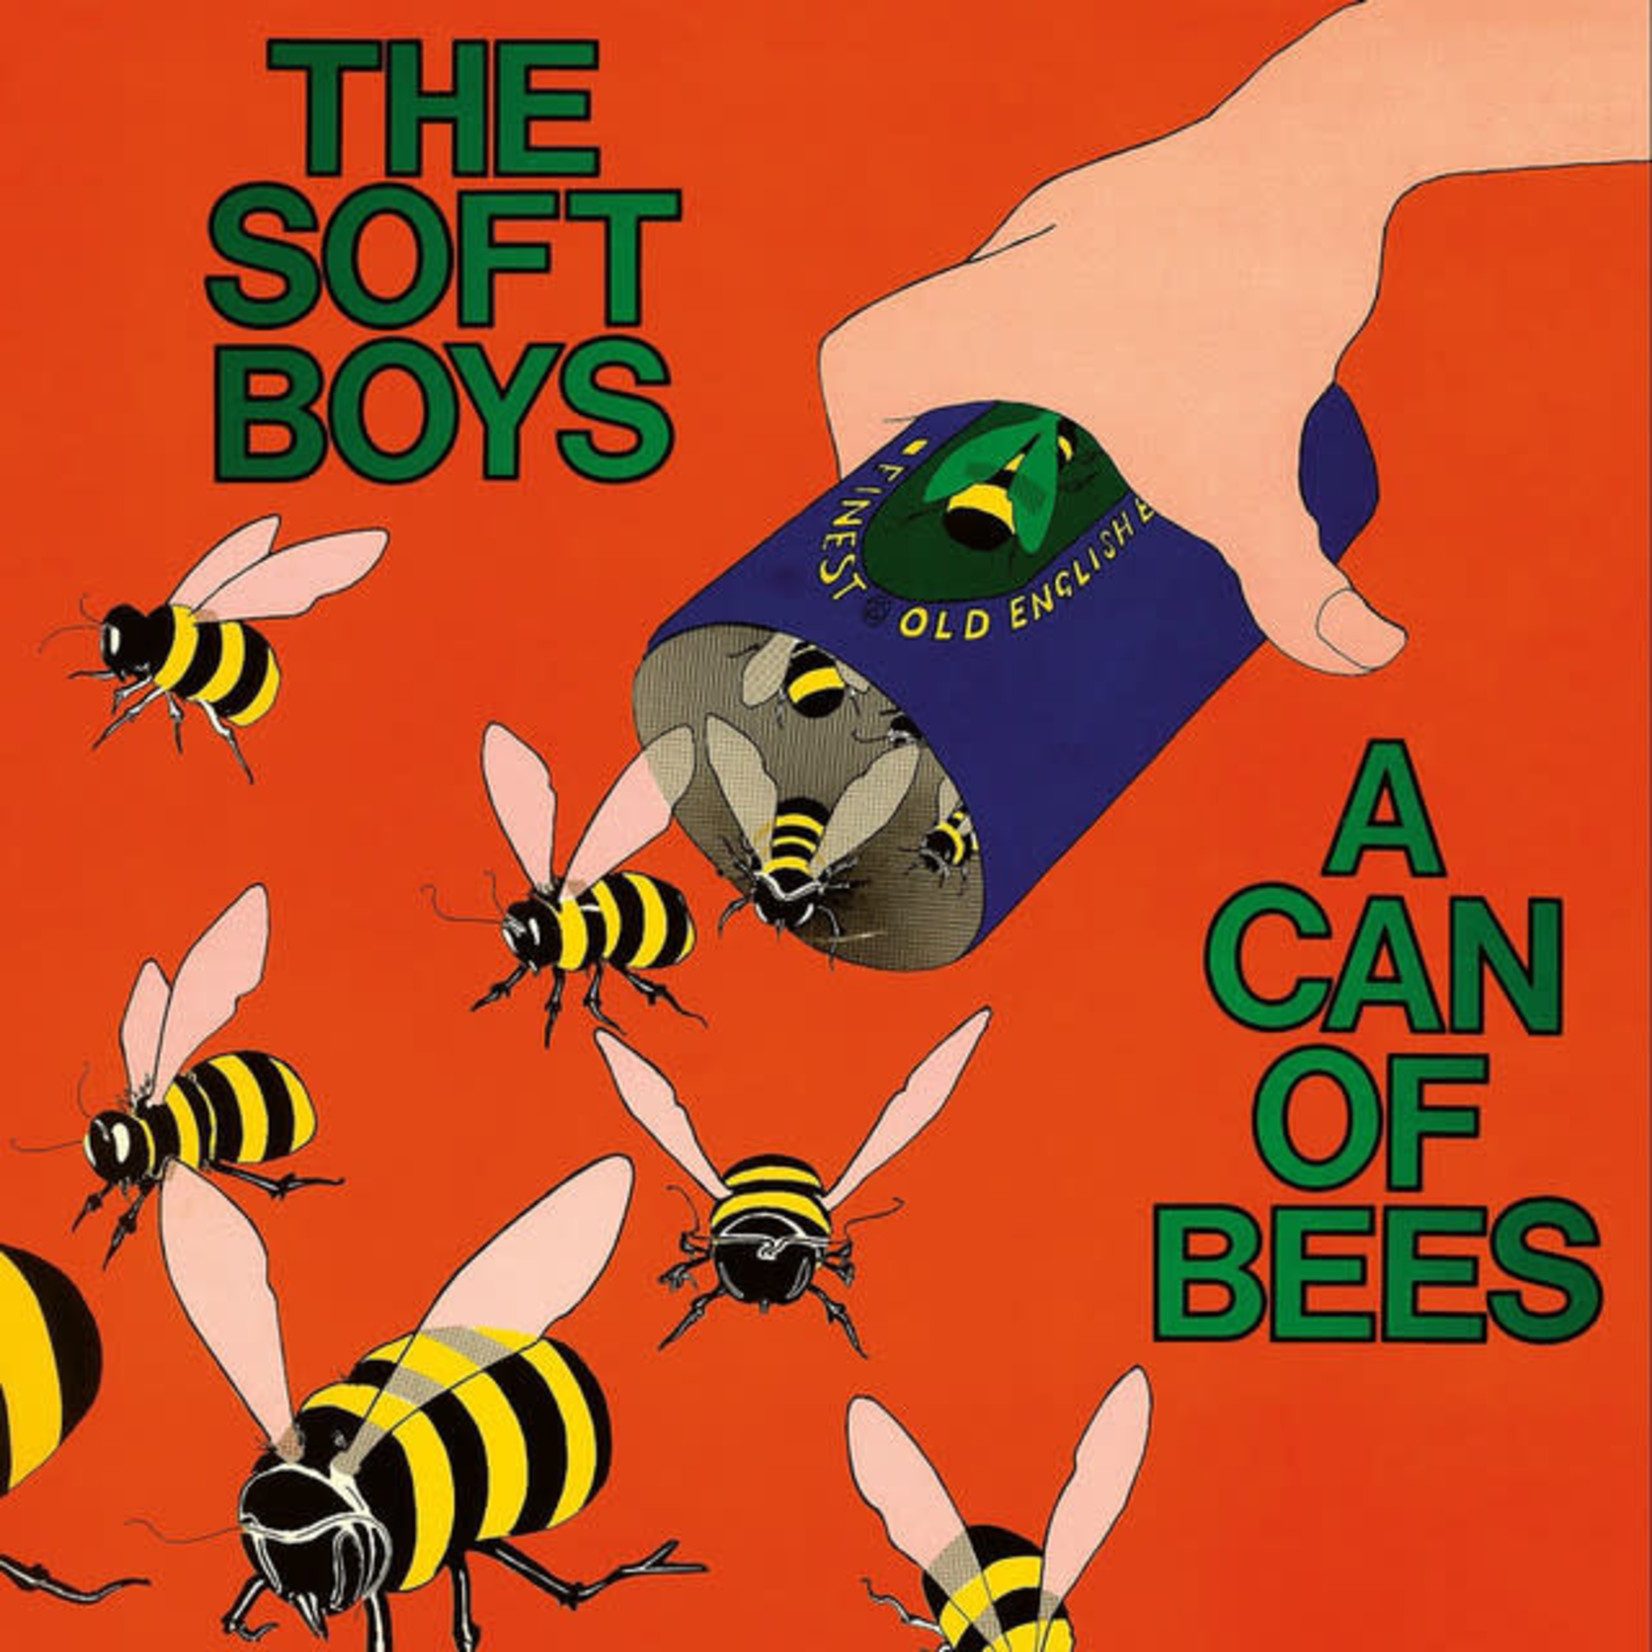 Vinyl The Soft Boys - A Can Of Bees. $$